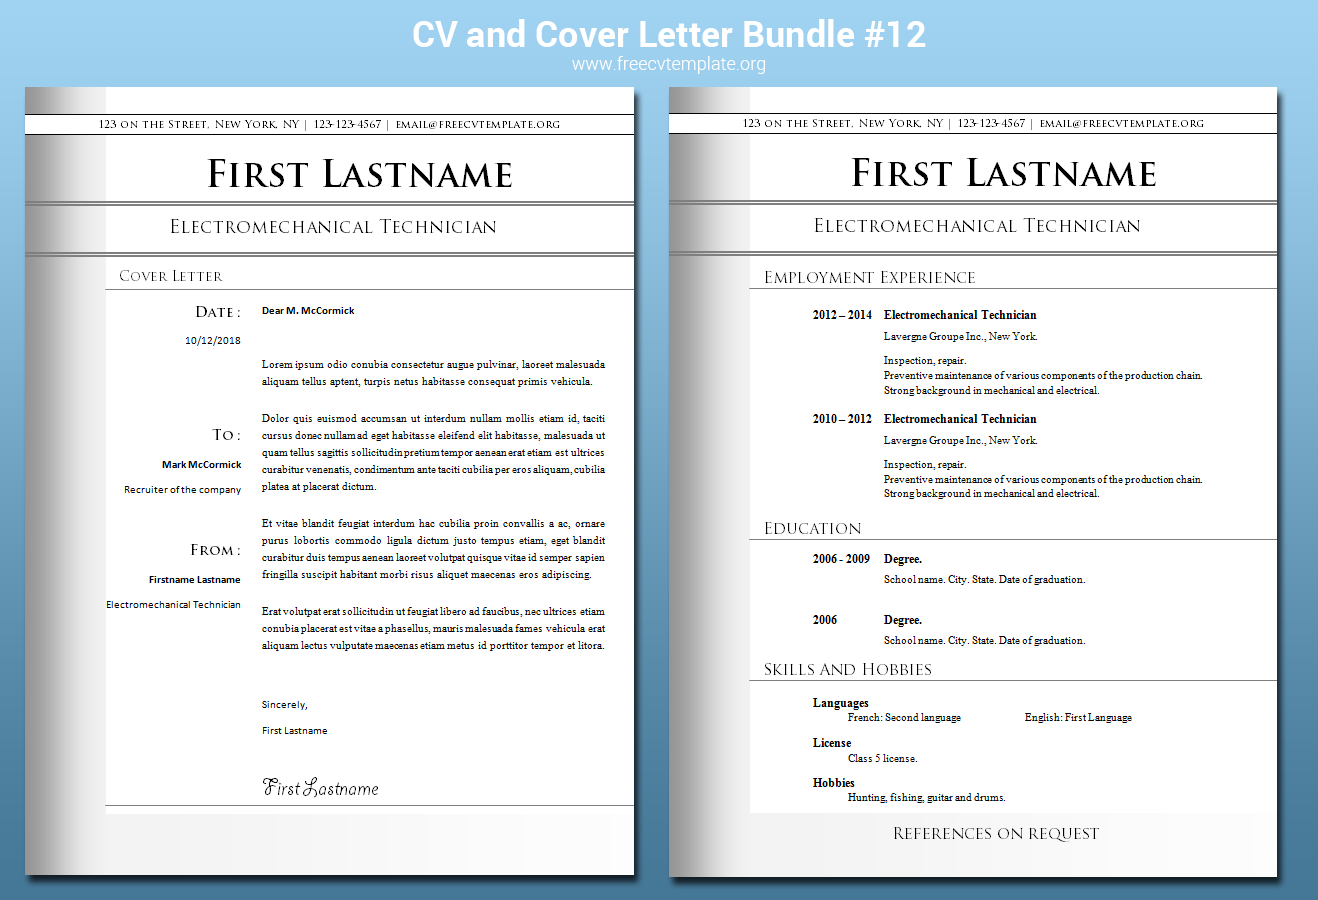 CV and Cover Letter Bundle #12